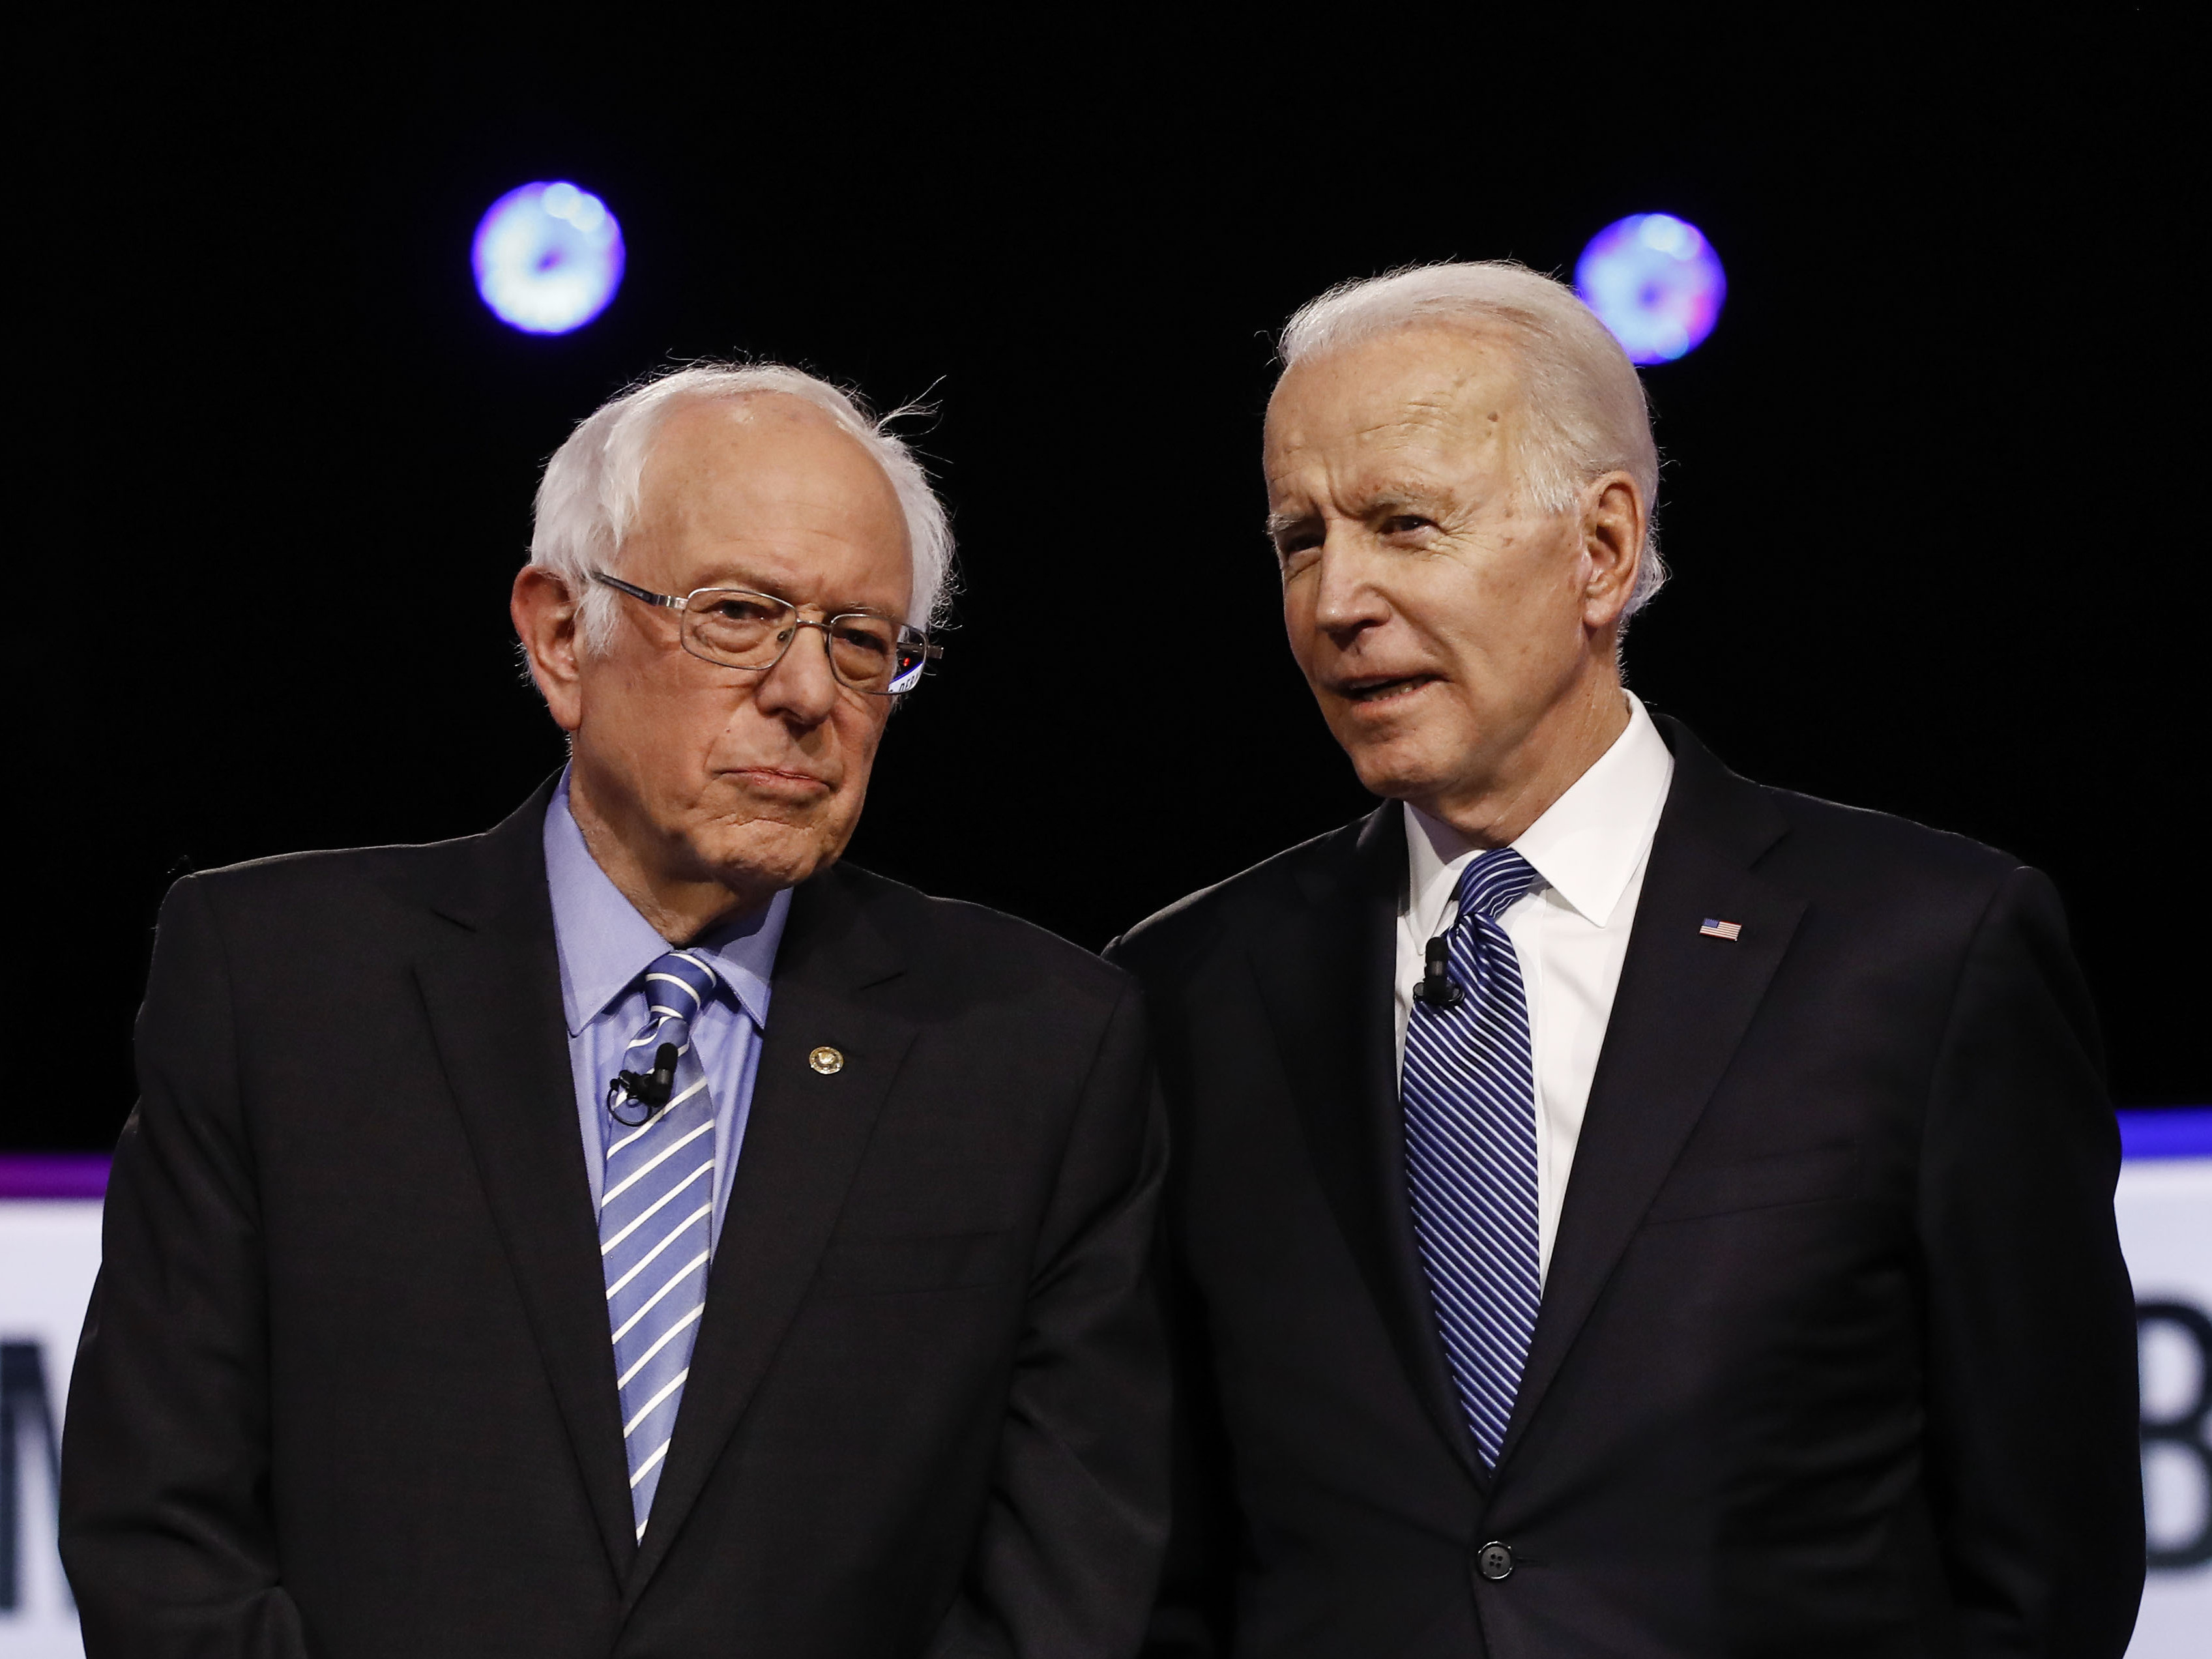 Biden Gets Virus Name Wrong at Debate